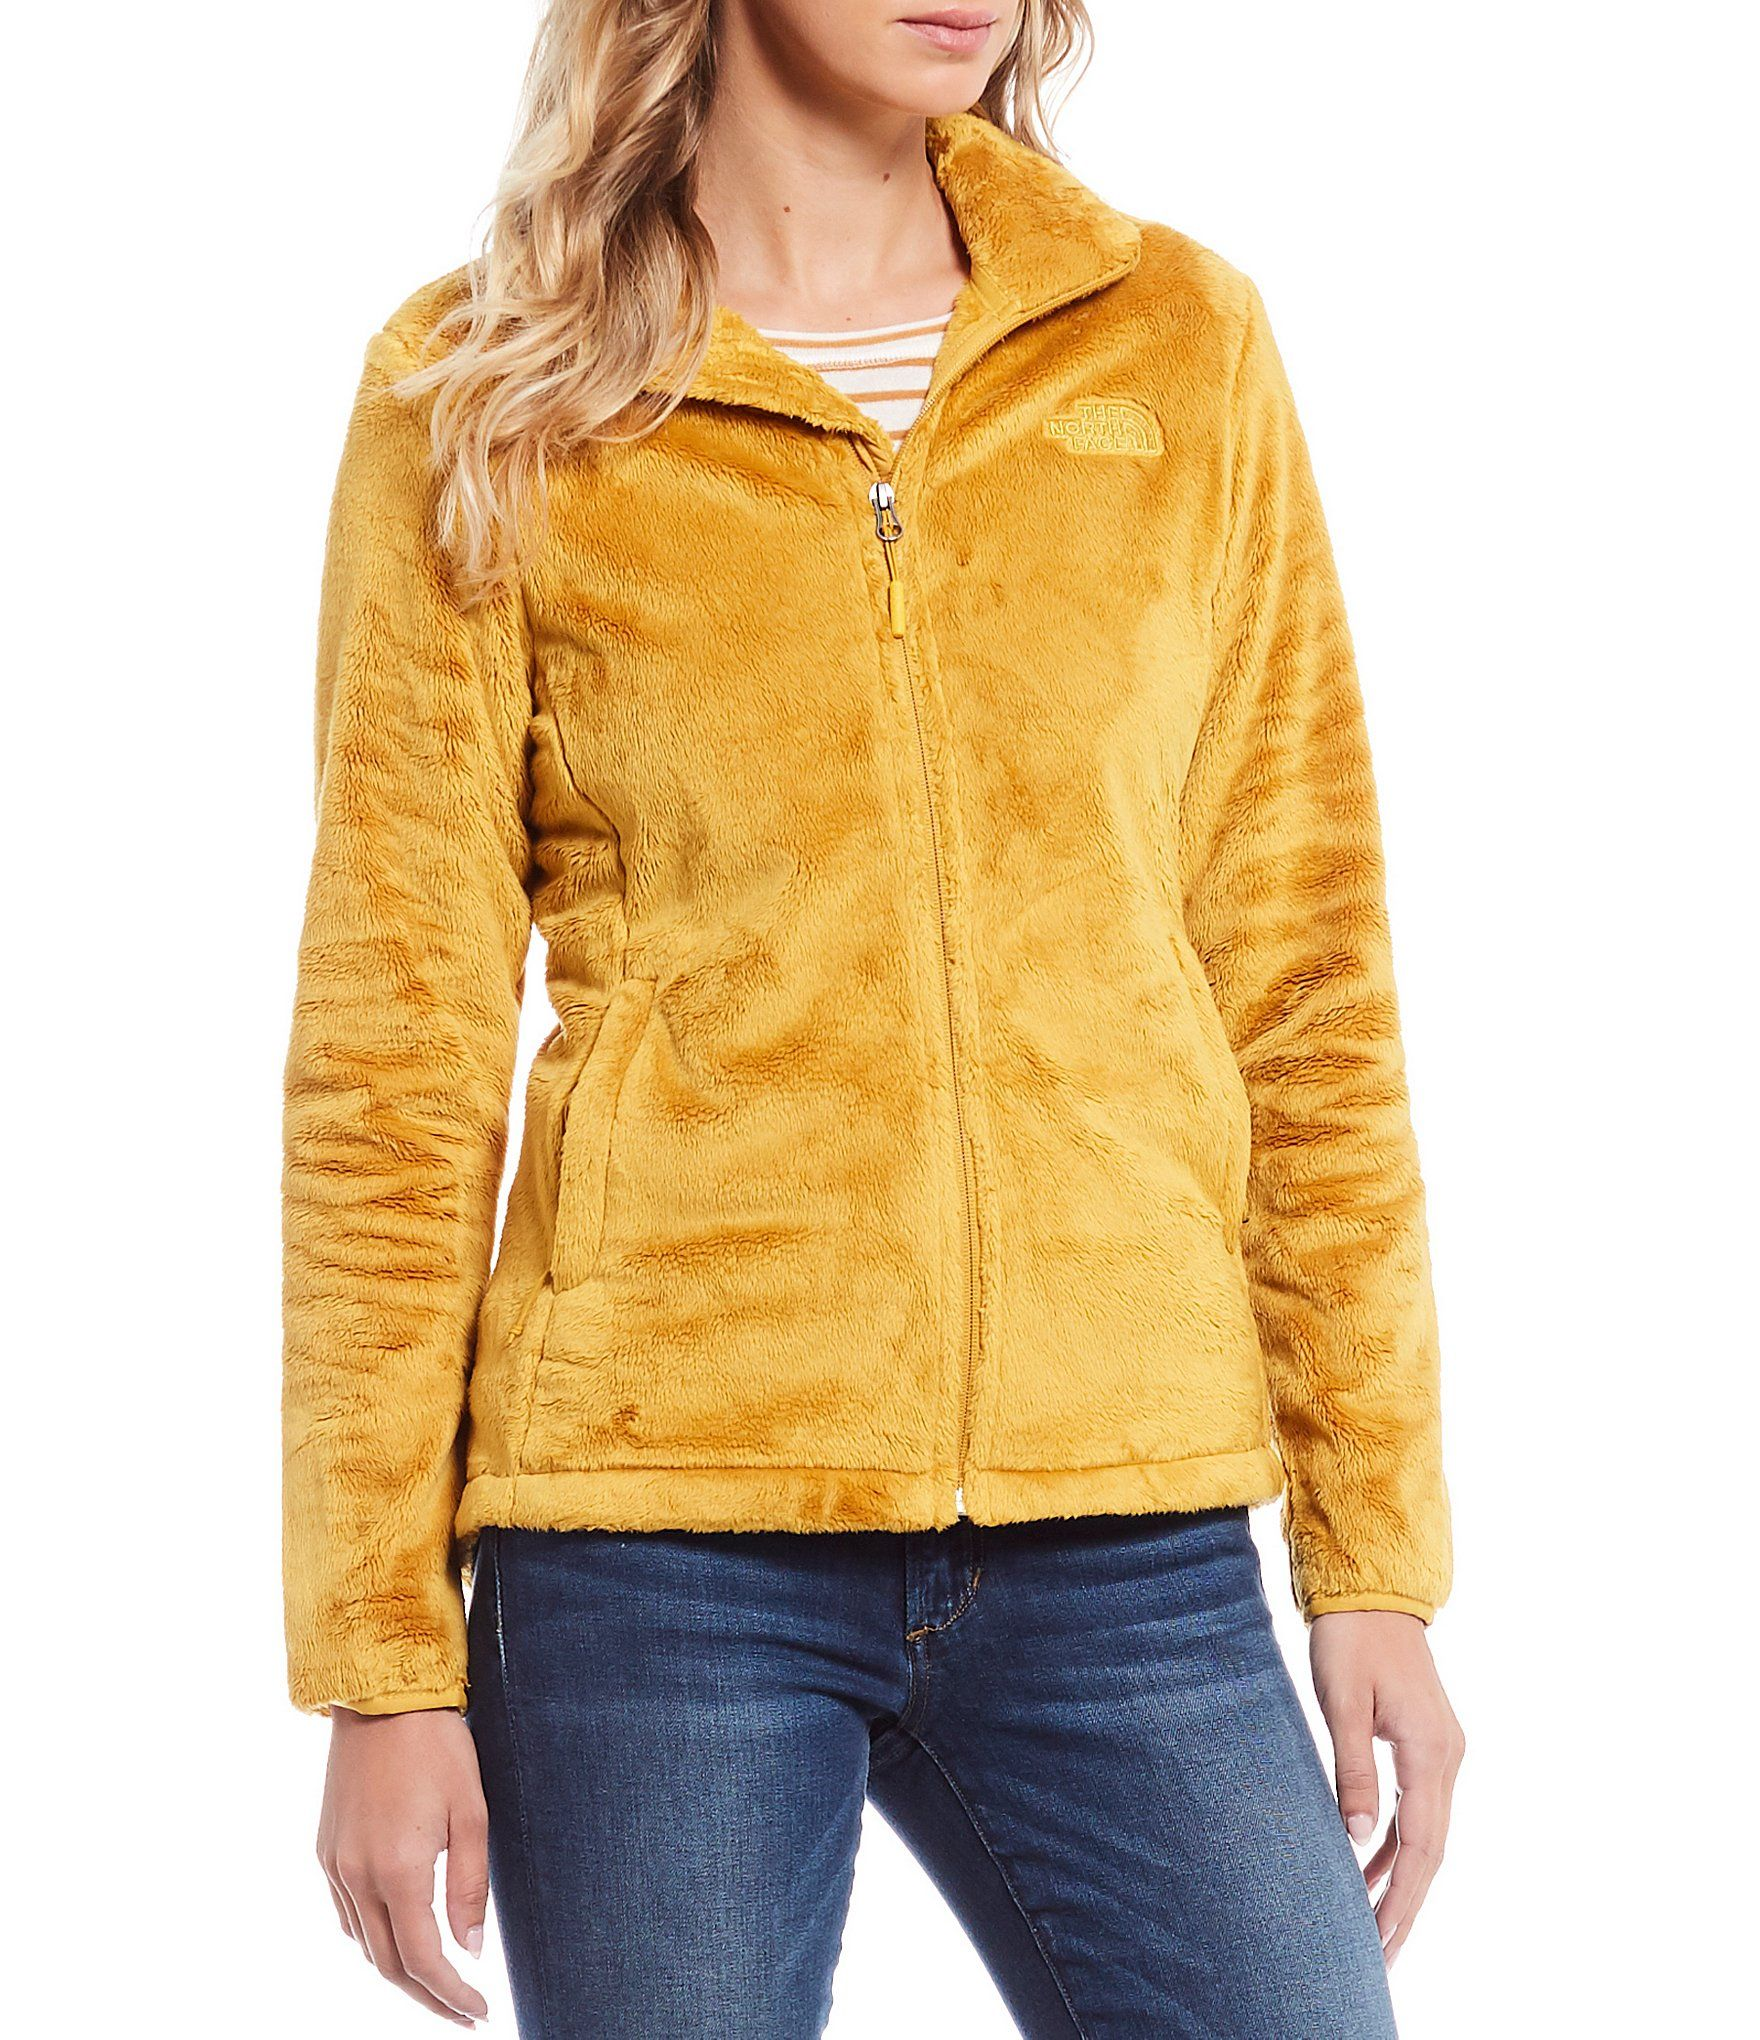 Shop For The North Face Osito Silken Fleece Jacket At Dillard S Visit Dillard S To Find Clothing Accessories Shoes C Fleece Jacket Jackets North Face Osito [ 2040 x 1760 Pixel ]